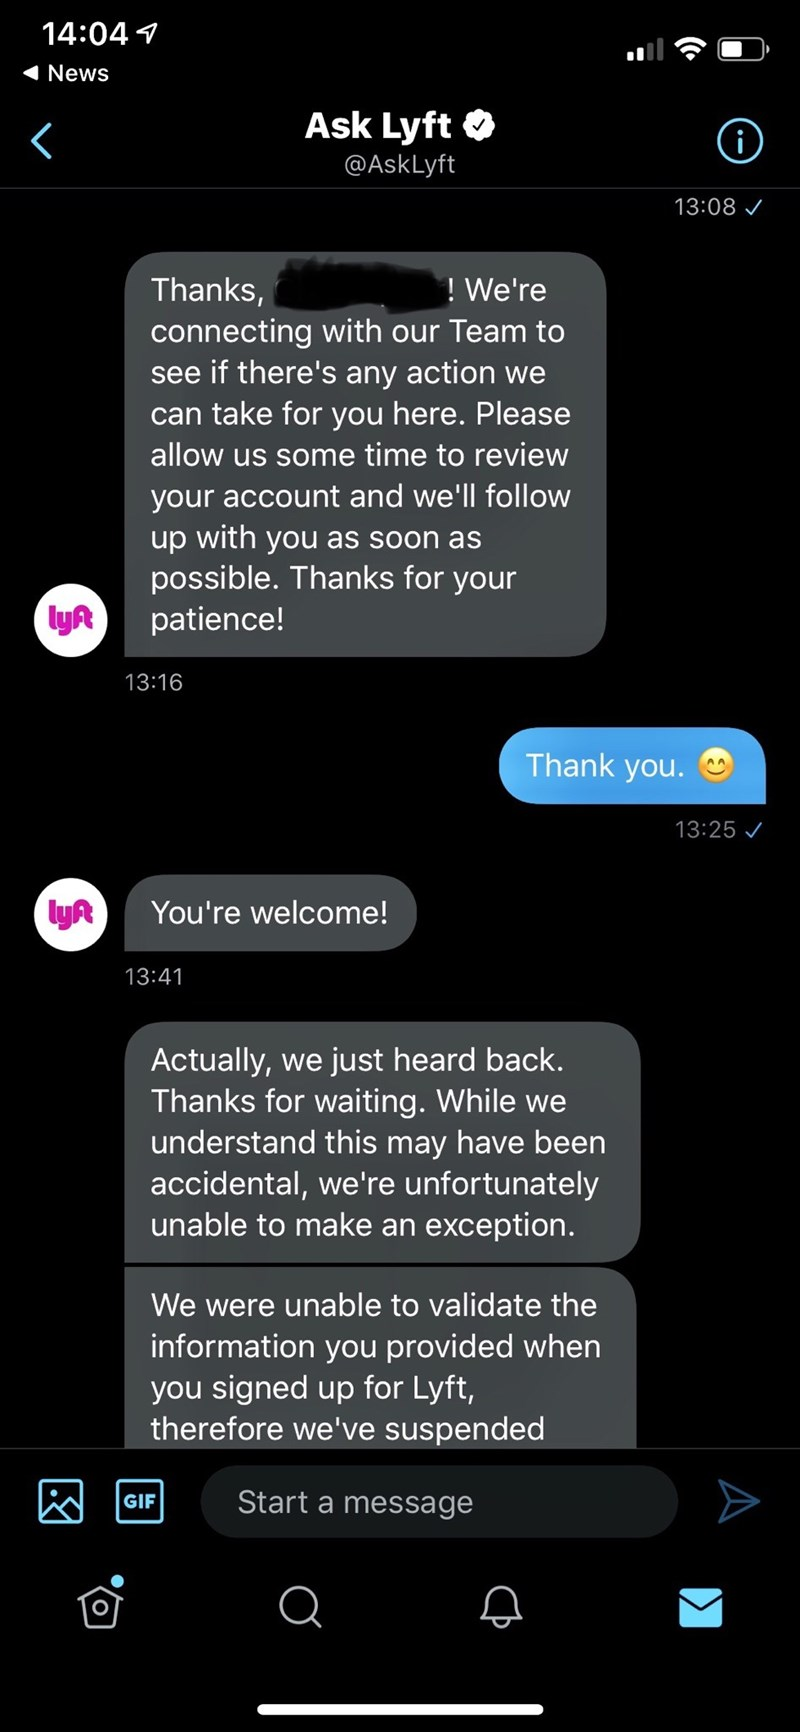 Text - 14:04 4 News Ask Lyft O @AskLyft 13:08 ! We're Thanks, connecting with our Team to see if there's any action we can take for you here. Please allow us some time to review your account and we'll follow up with you as soon as possible. Thanks for your patience! lyR 13:16 Thank you. 13:25 / lyR You're welcome! 13:41 Actually, we just heard back. Thanks for waiting. While we understand this may have been accidental, we're unfortunately unable to make an exception. We were unable to validate t